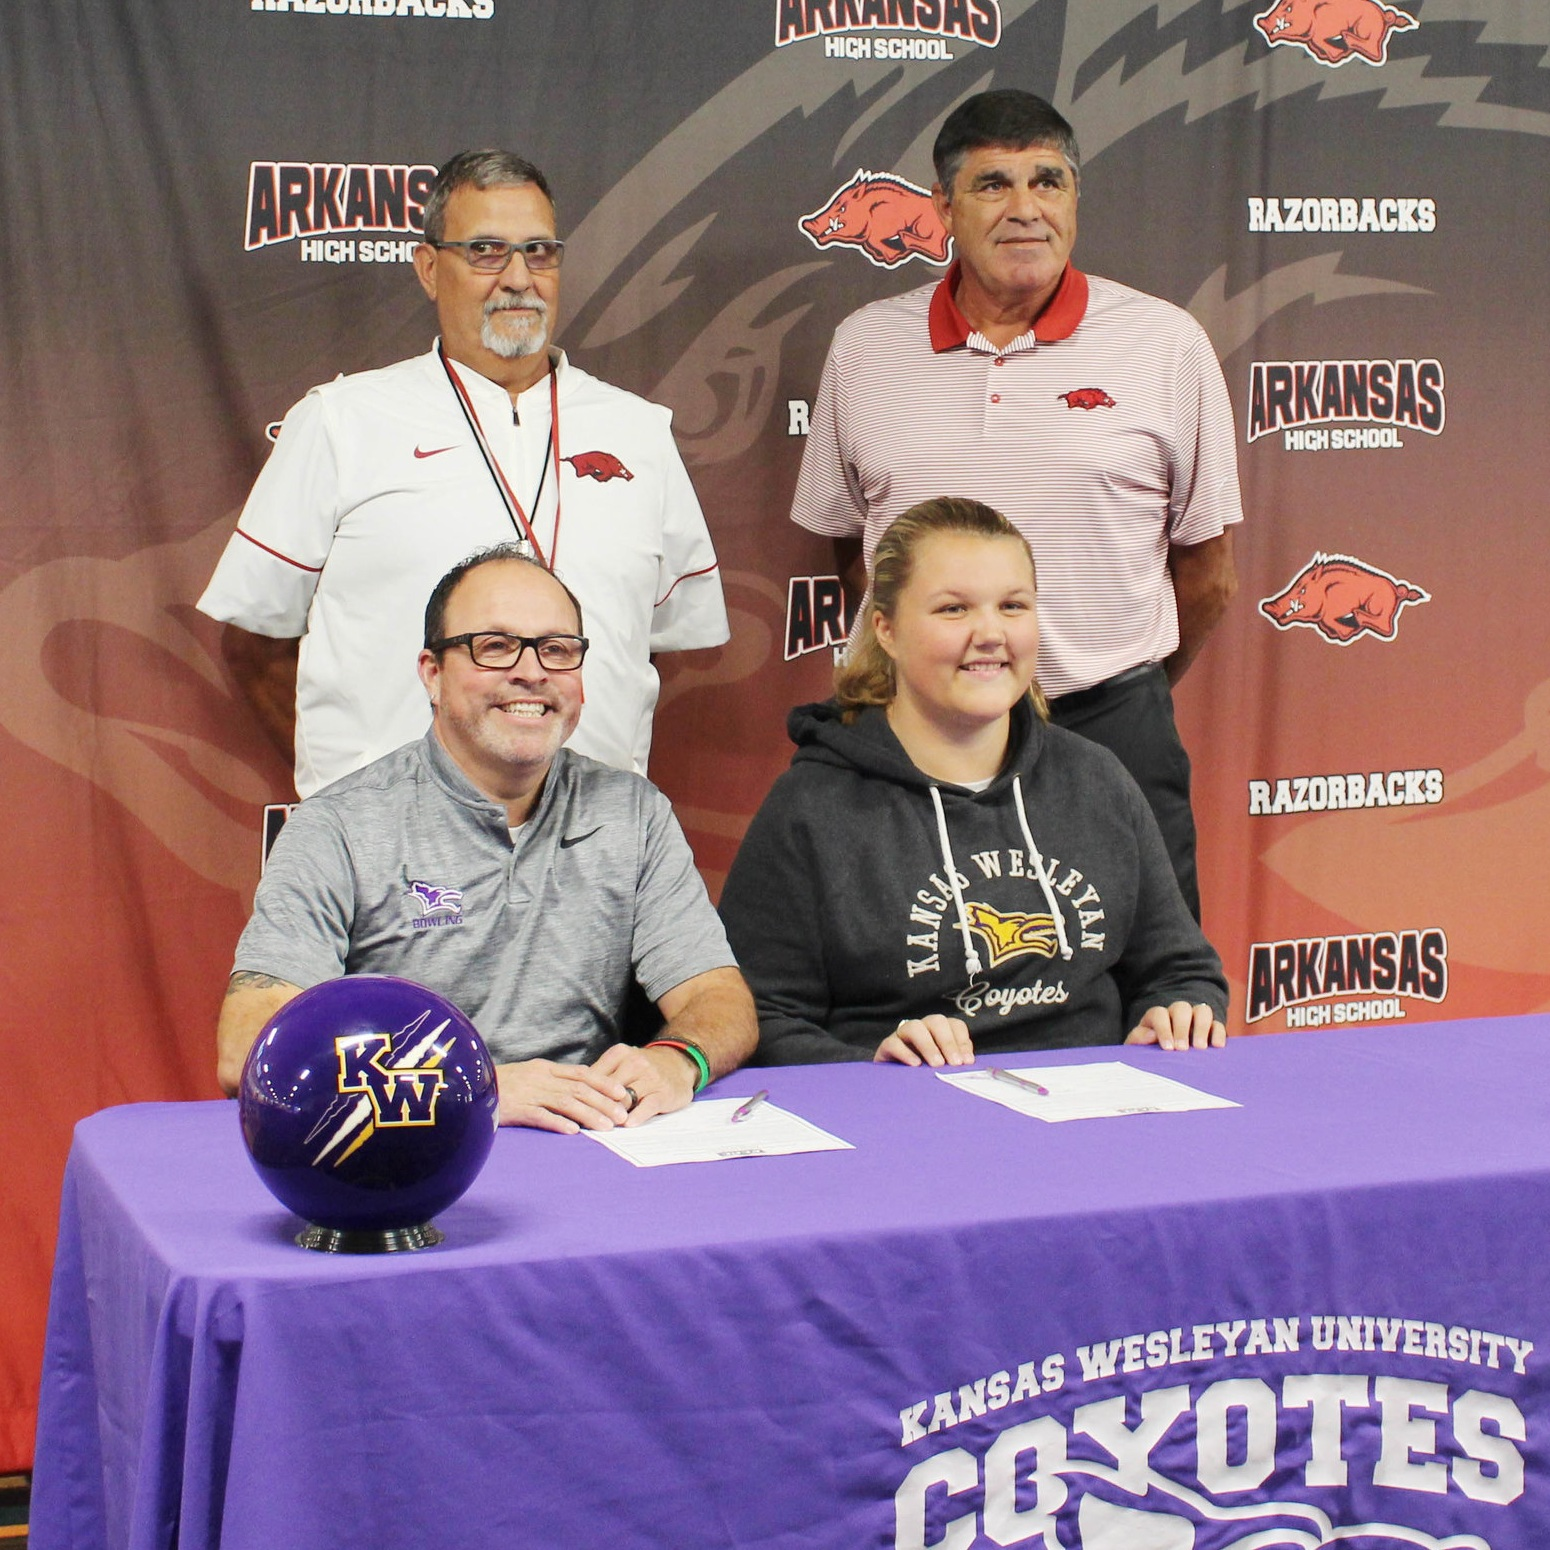 On September 28, 2018, Linda signed with Kansas Wesleyan University as her coaches, Todd Zenner (KWU), and Roger Rico and Charlie Bateman (AHS) looked on.